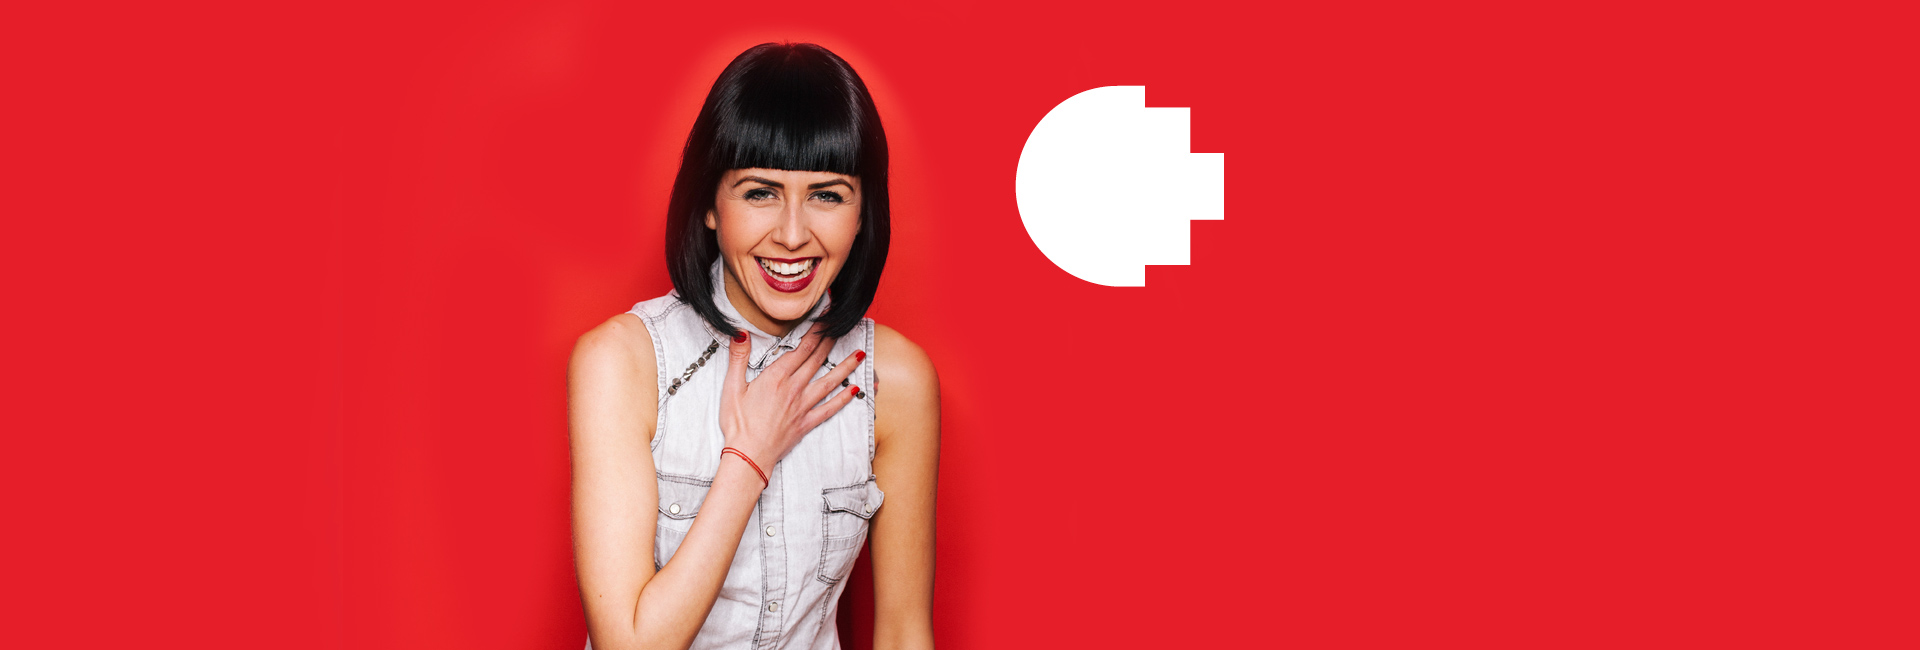 Woman with red background and white pixel